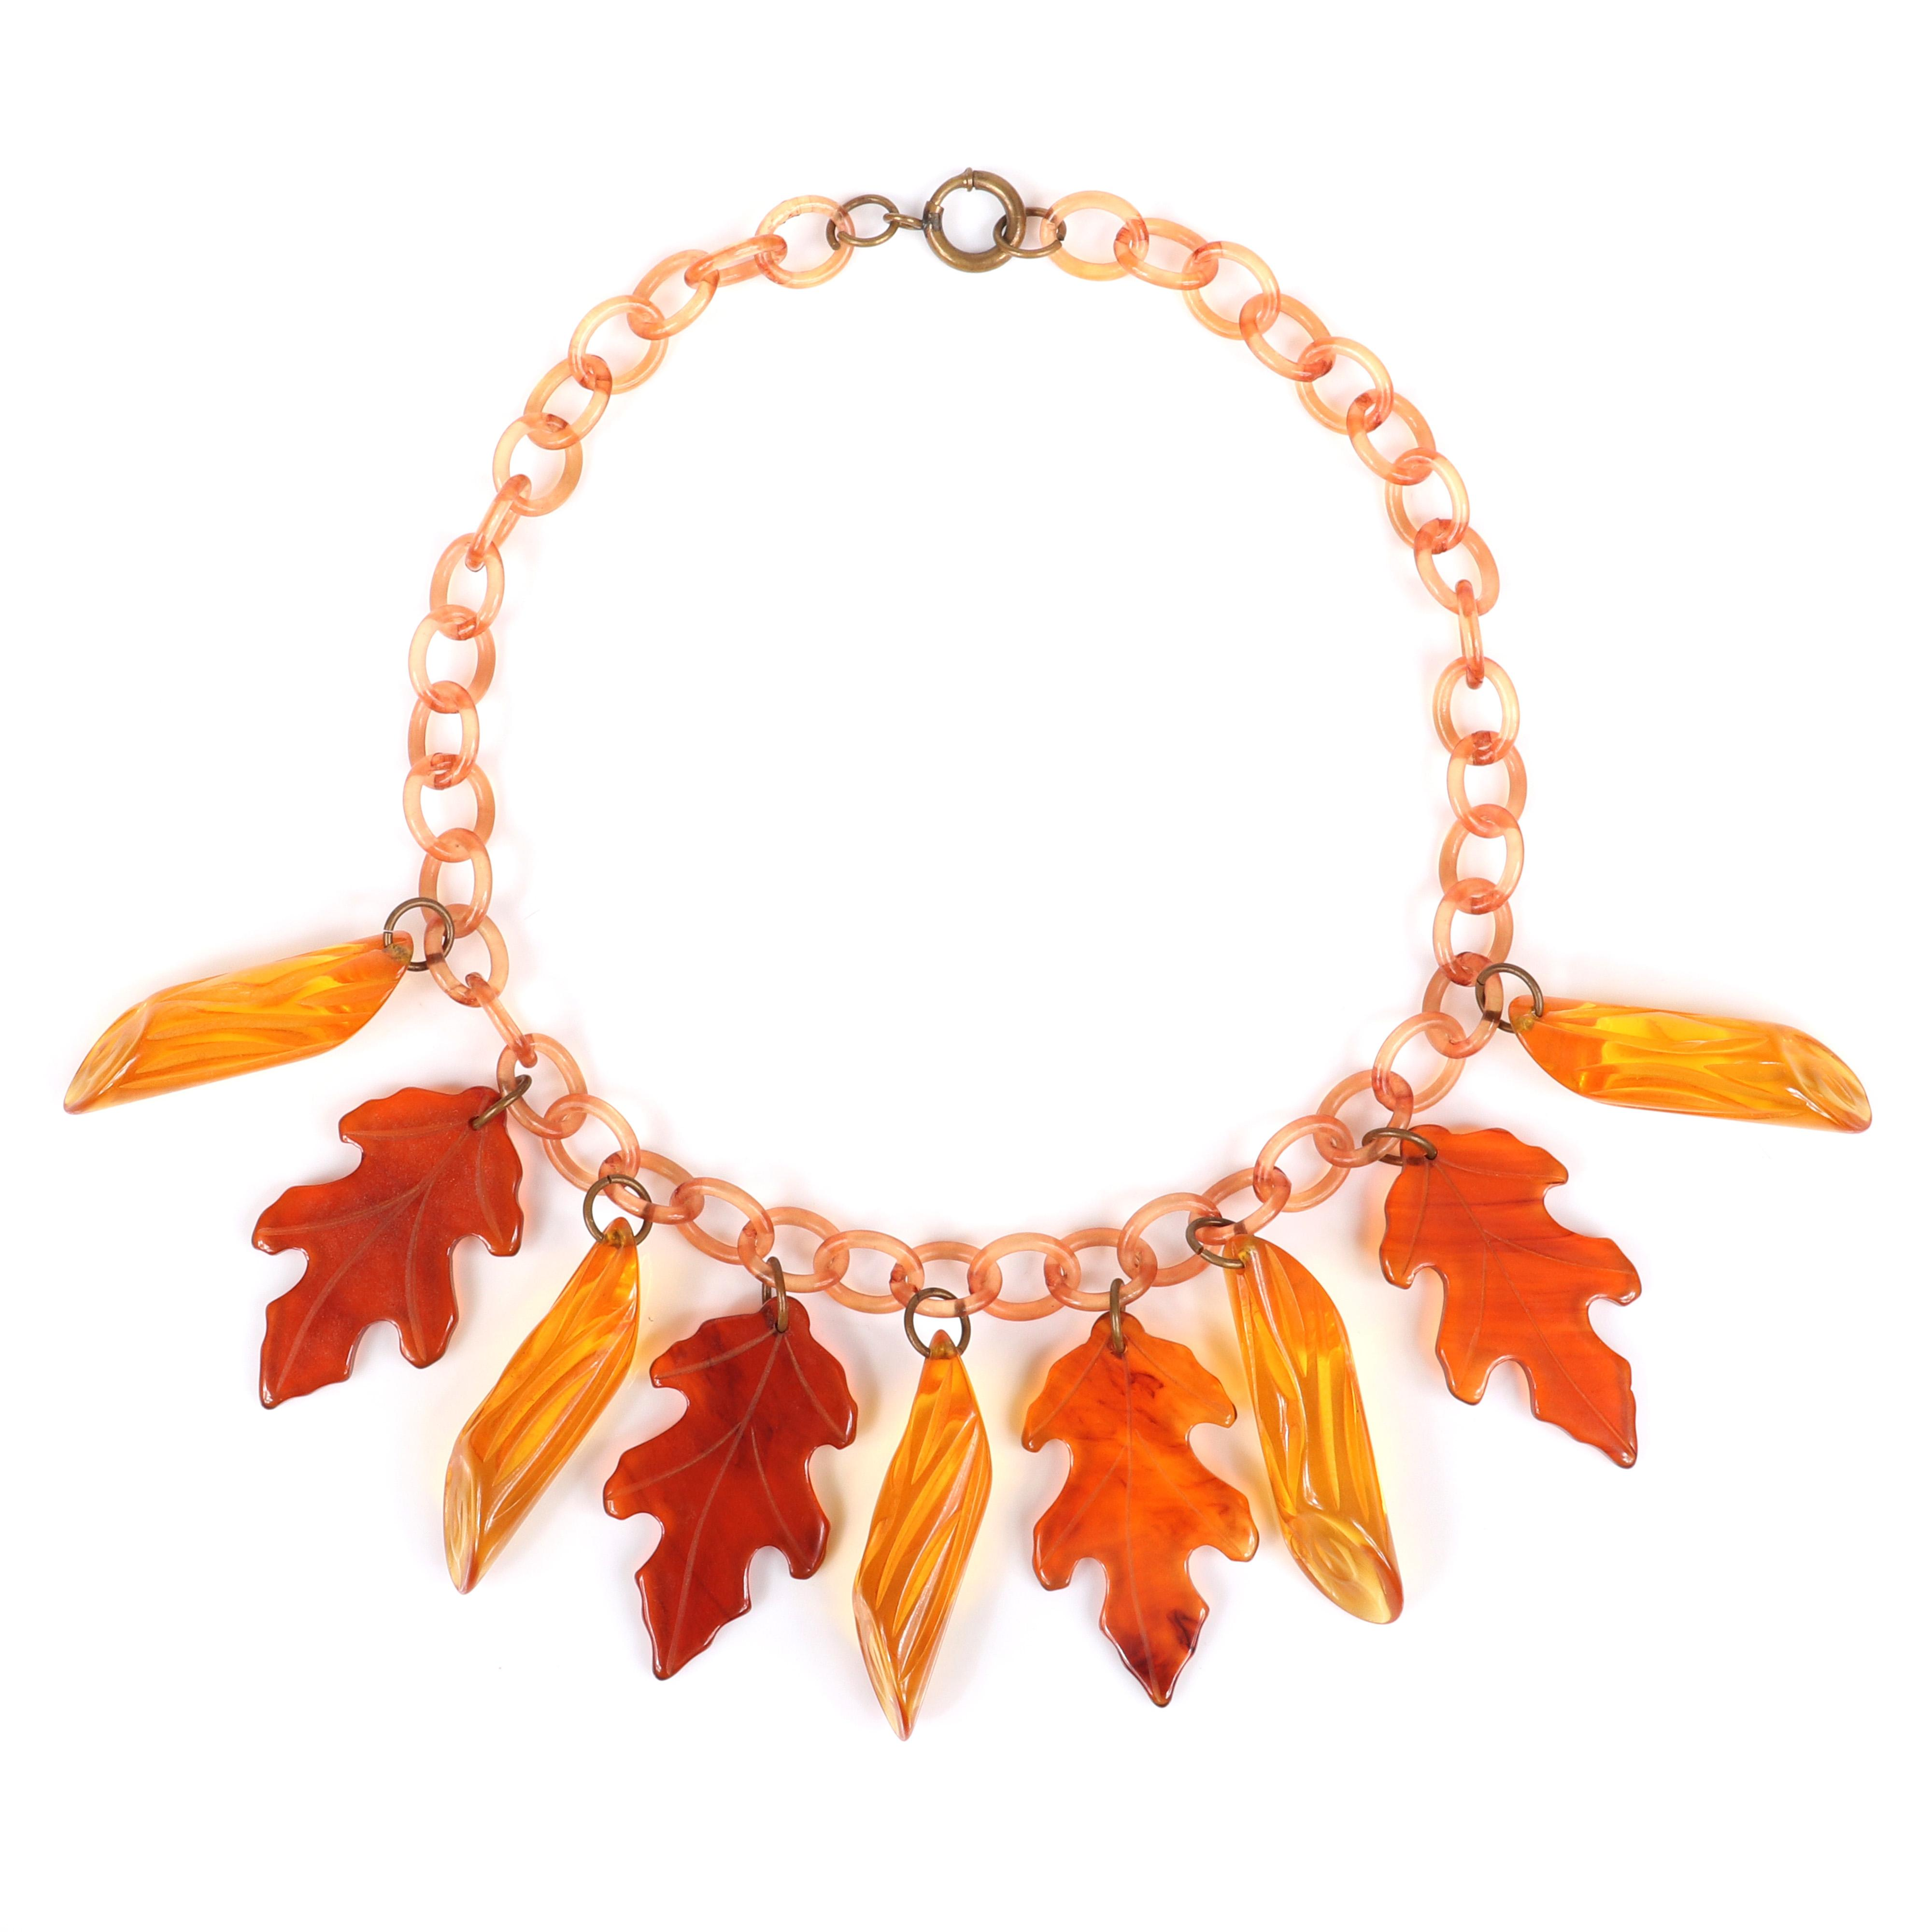 "Vintage Bakelite Autumn theme charm necklace with carved apple juice log and oak leaf dangles on celluloid chain. 15""L , 1 3/4""H charm"